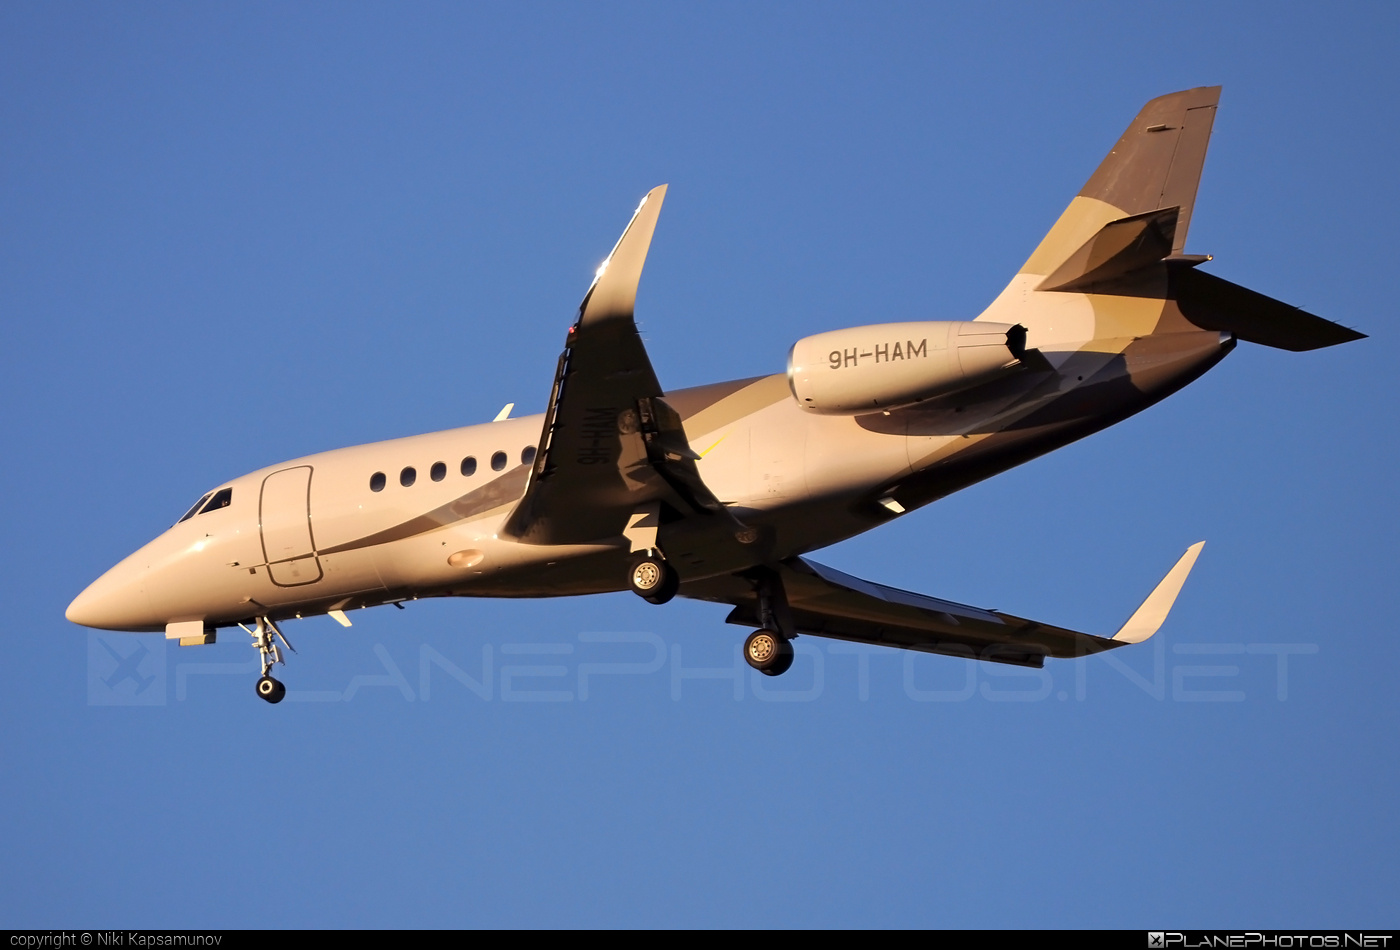 Dassault Falcon 2000LX - 9H-HAM operated by Avcon Jet Malta #avconjet #avconjetmalta #dassault #dassaultfalcon #dassaultfalcon2000 #dassaultfalcon2000lx #falcon2000 #falcon2000lx